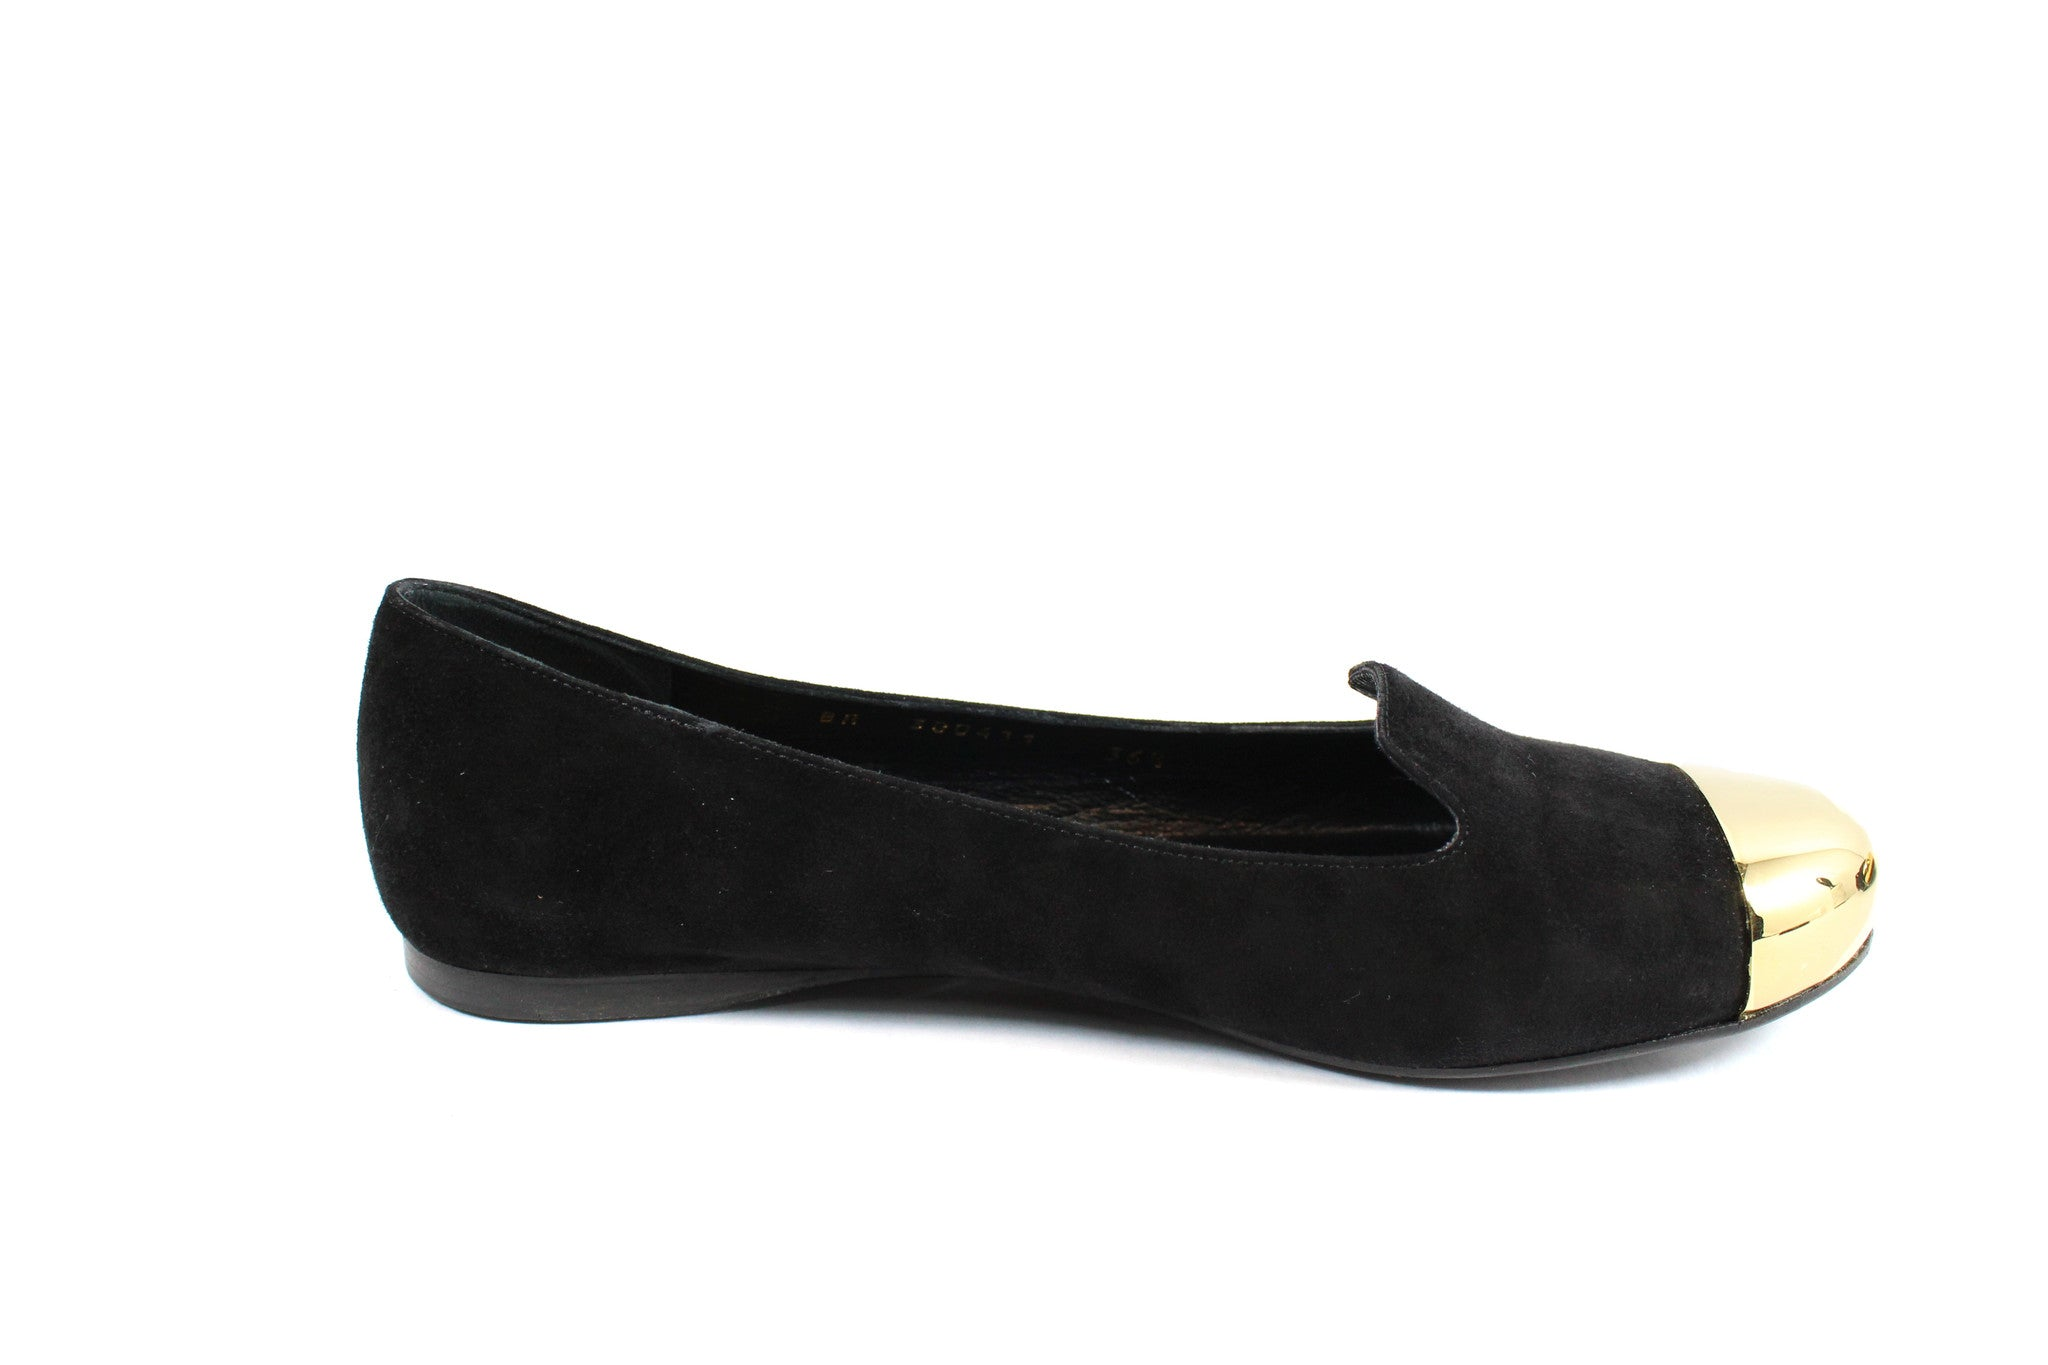 Yves Saint Laurent 'Evalyn' Suede Flats with Gold Cap Toe (Size 36.5) - Encore Consignment - 7